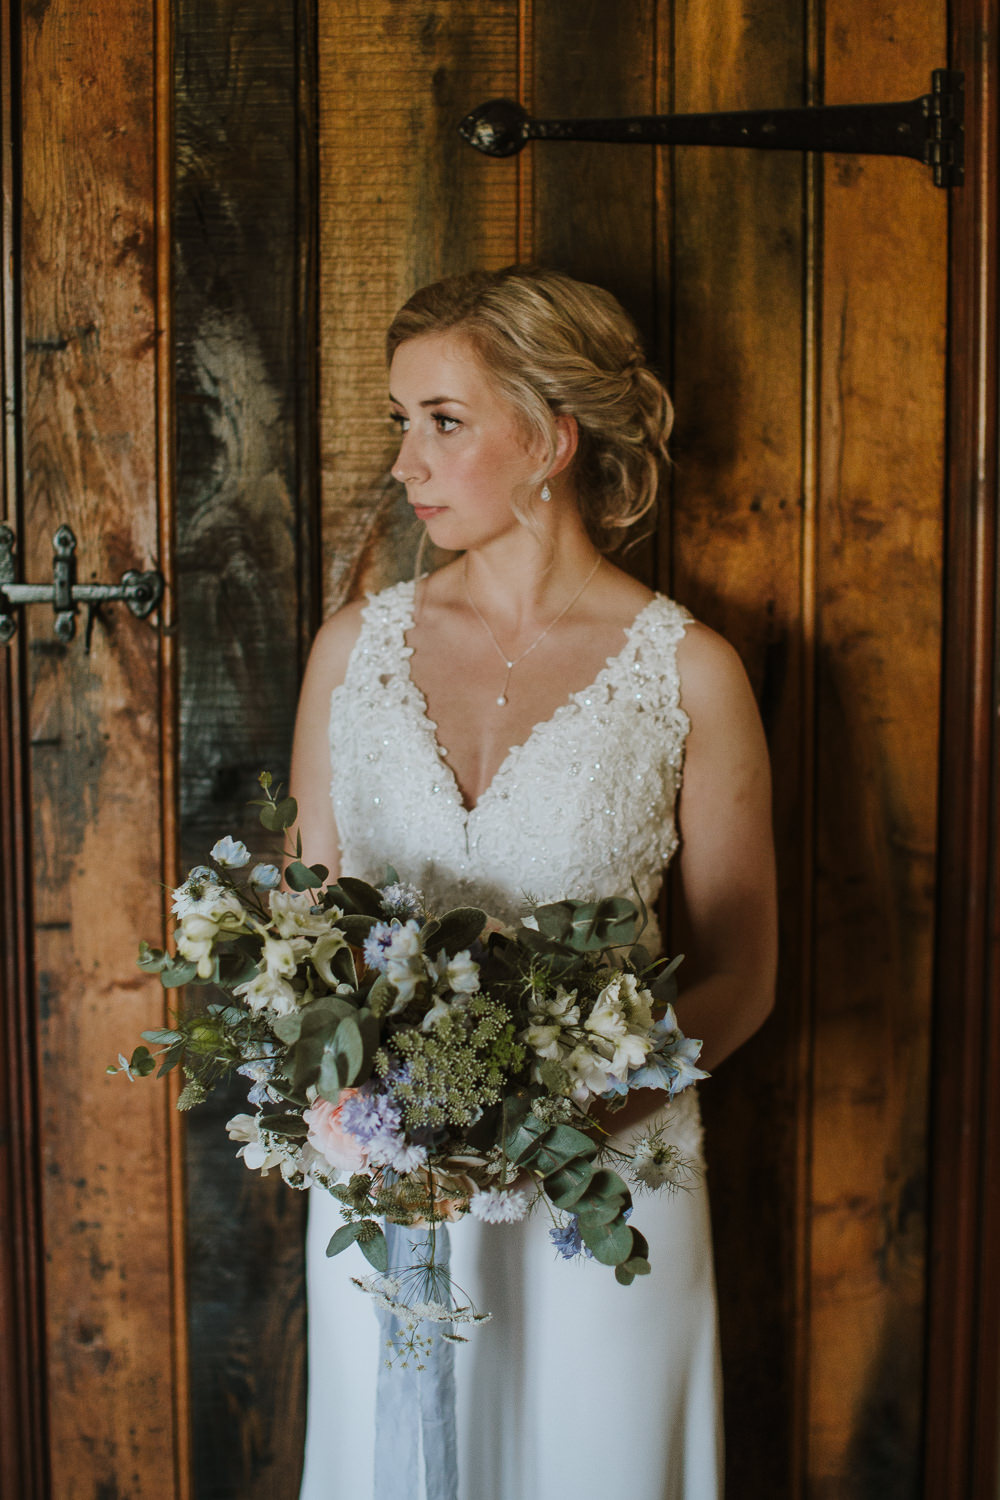 Bride Bridal Dress Gown Lace Open Back Train Crafty Wedding Sam Bennett Photography